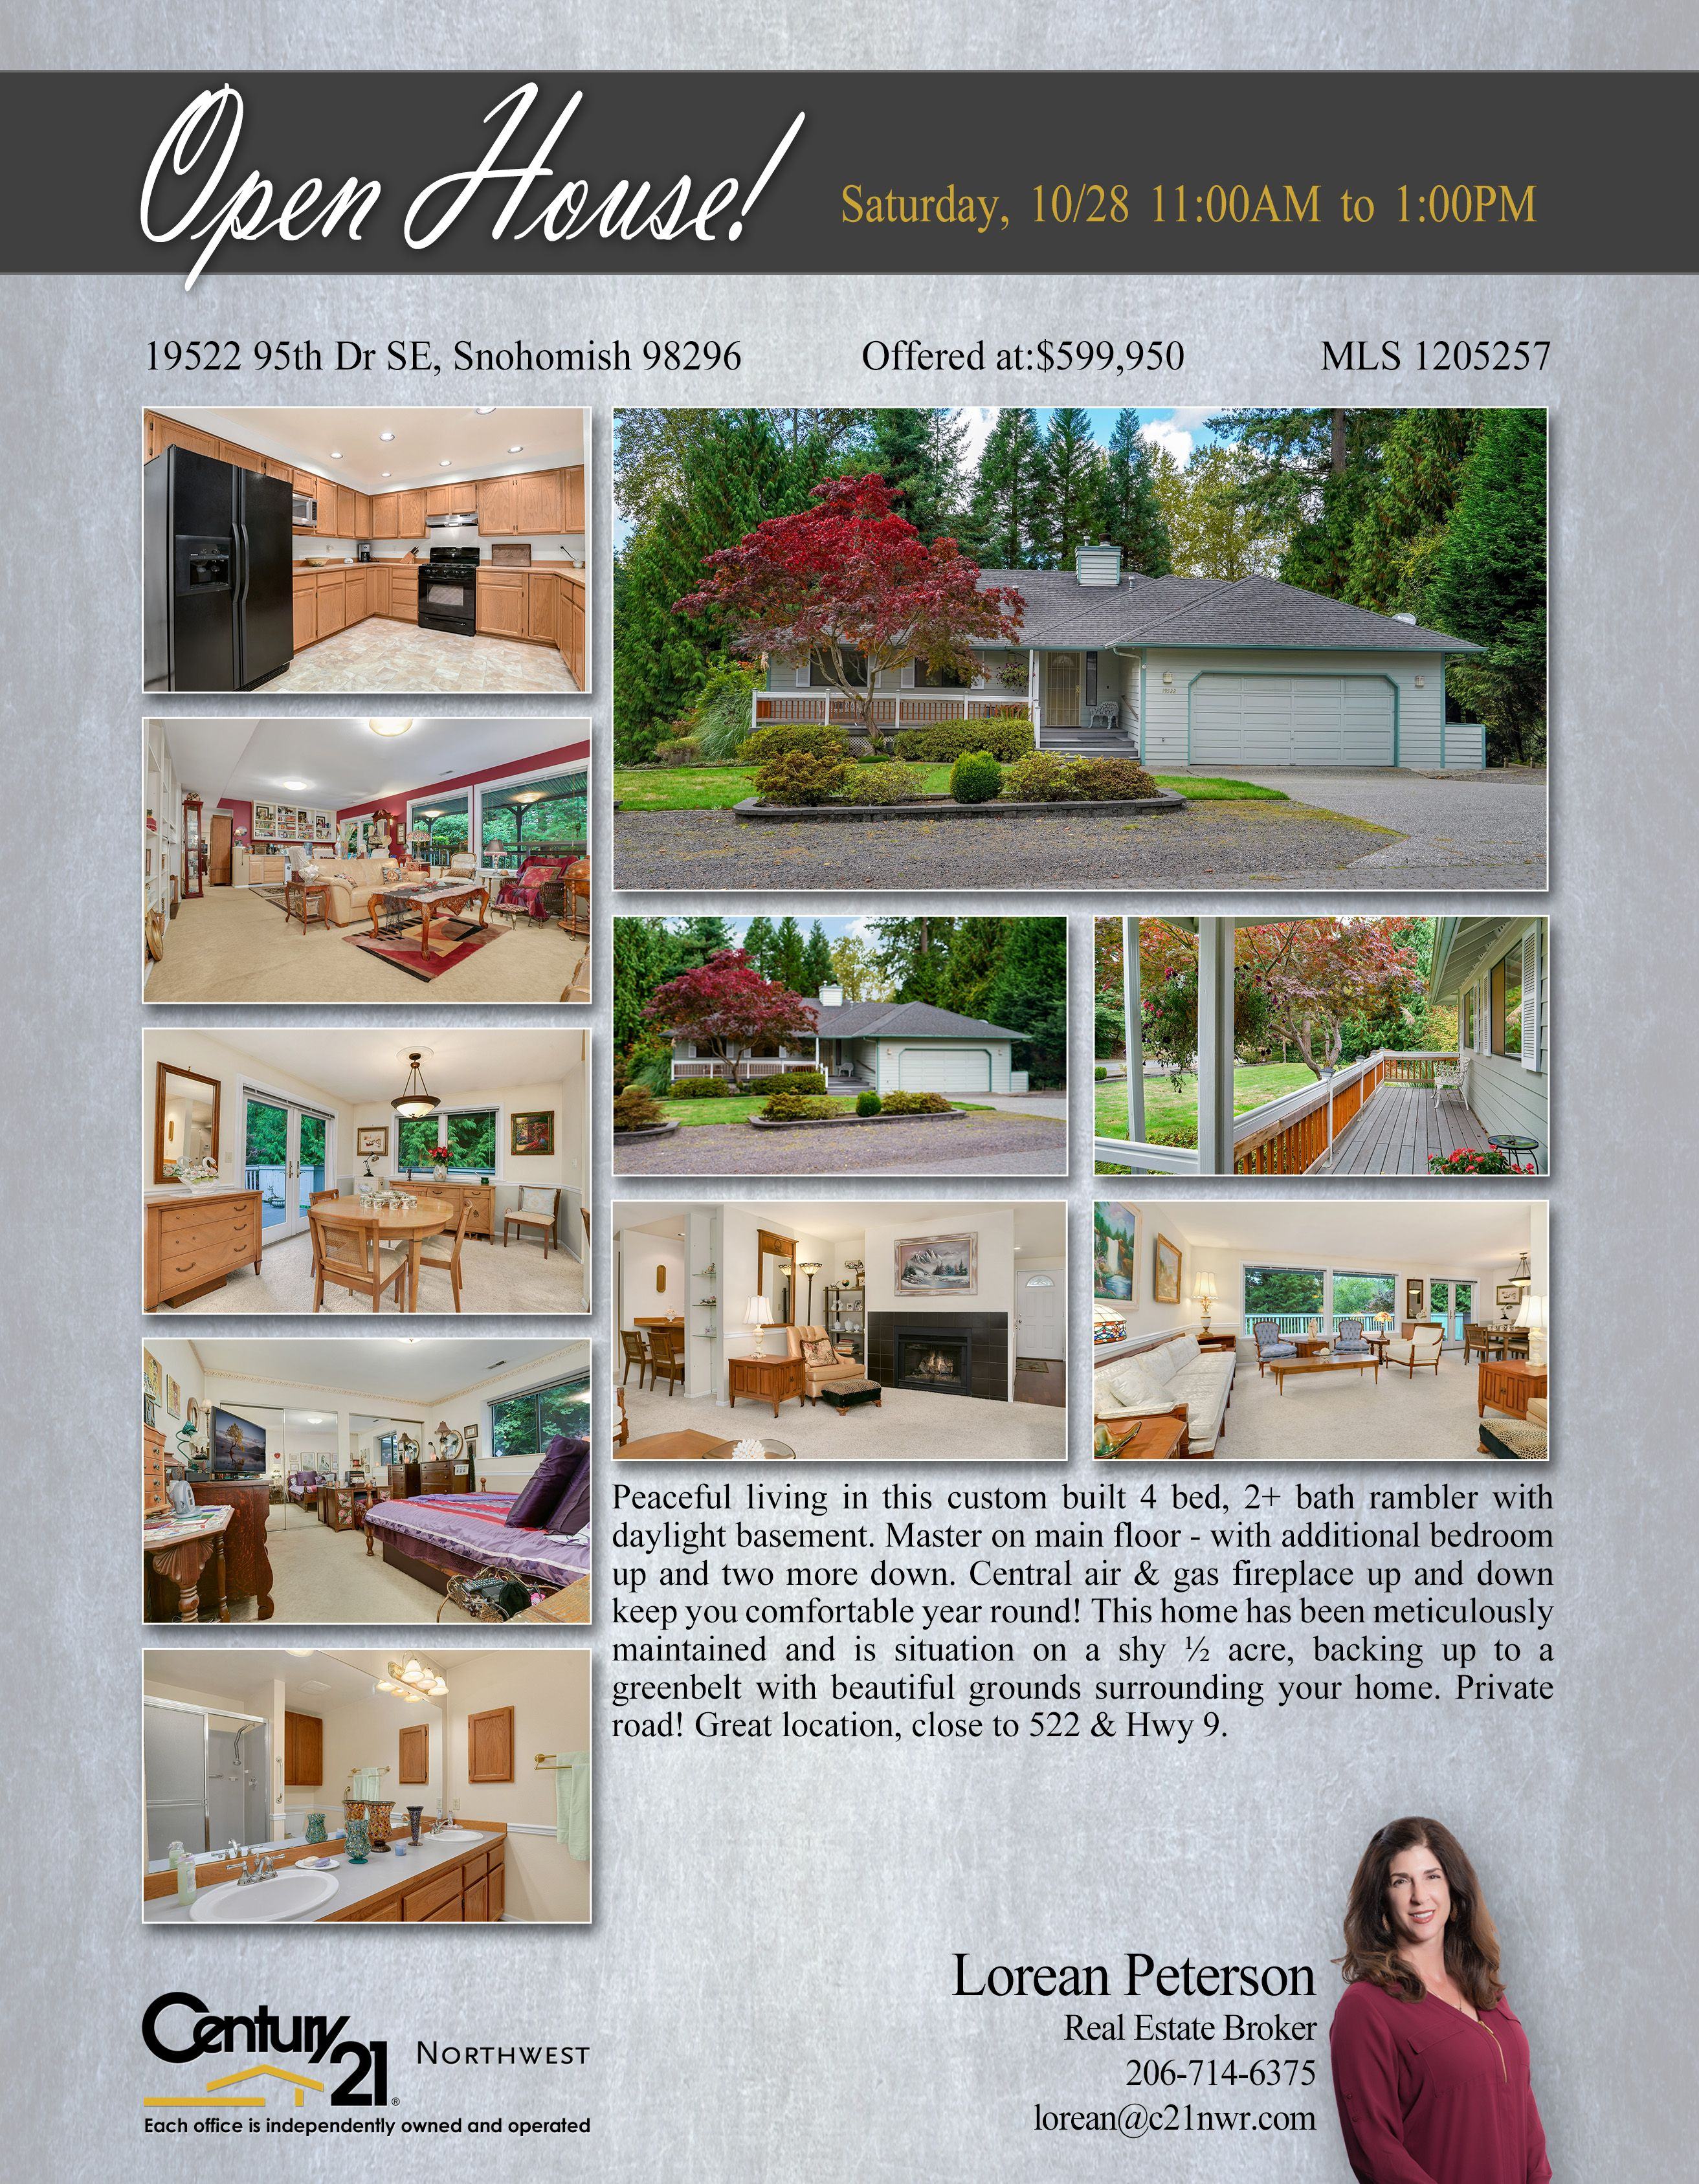 OPENHOUSE Peaceful living in this custom built 4 bed, 2